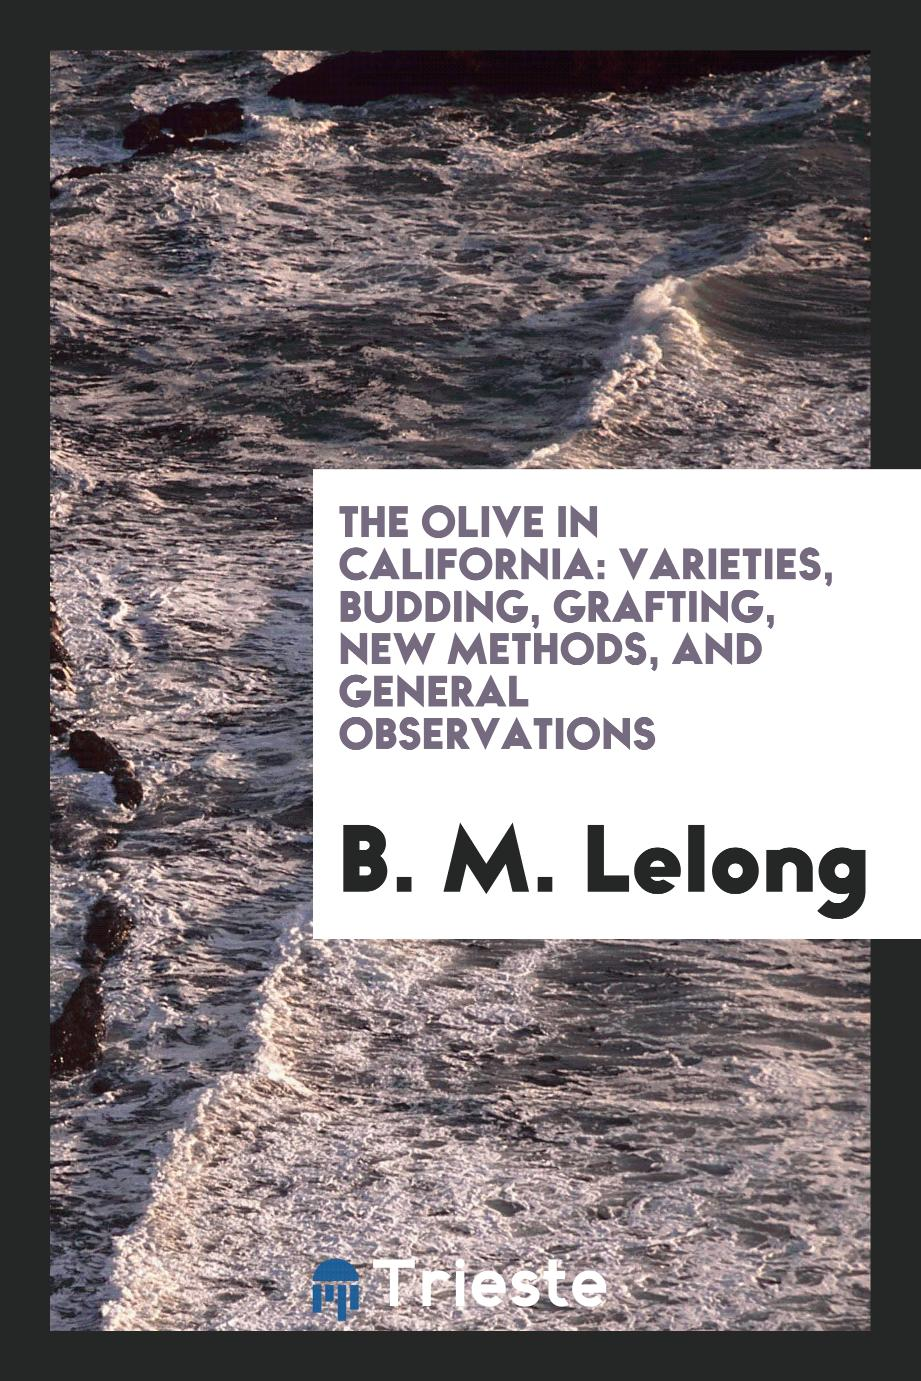 The Olive in California: Varieties, Budding, Grafting, New Methods, and General observations